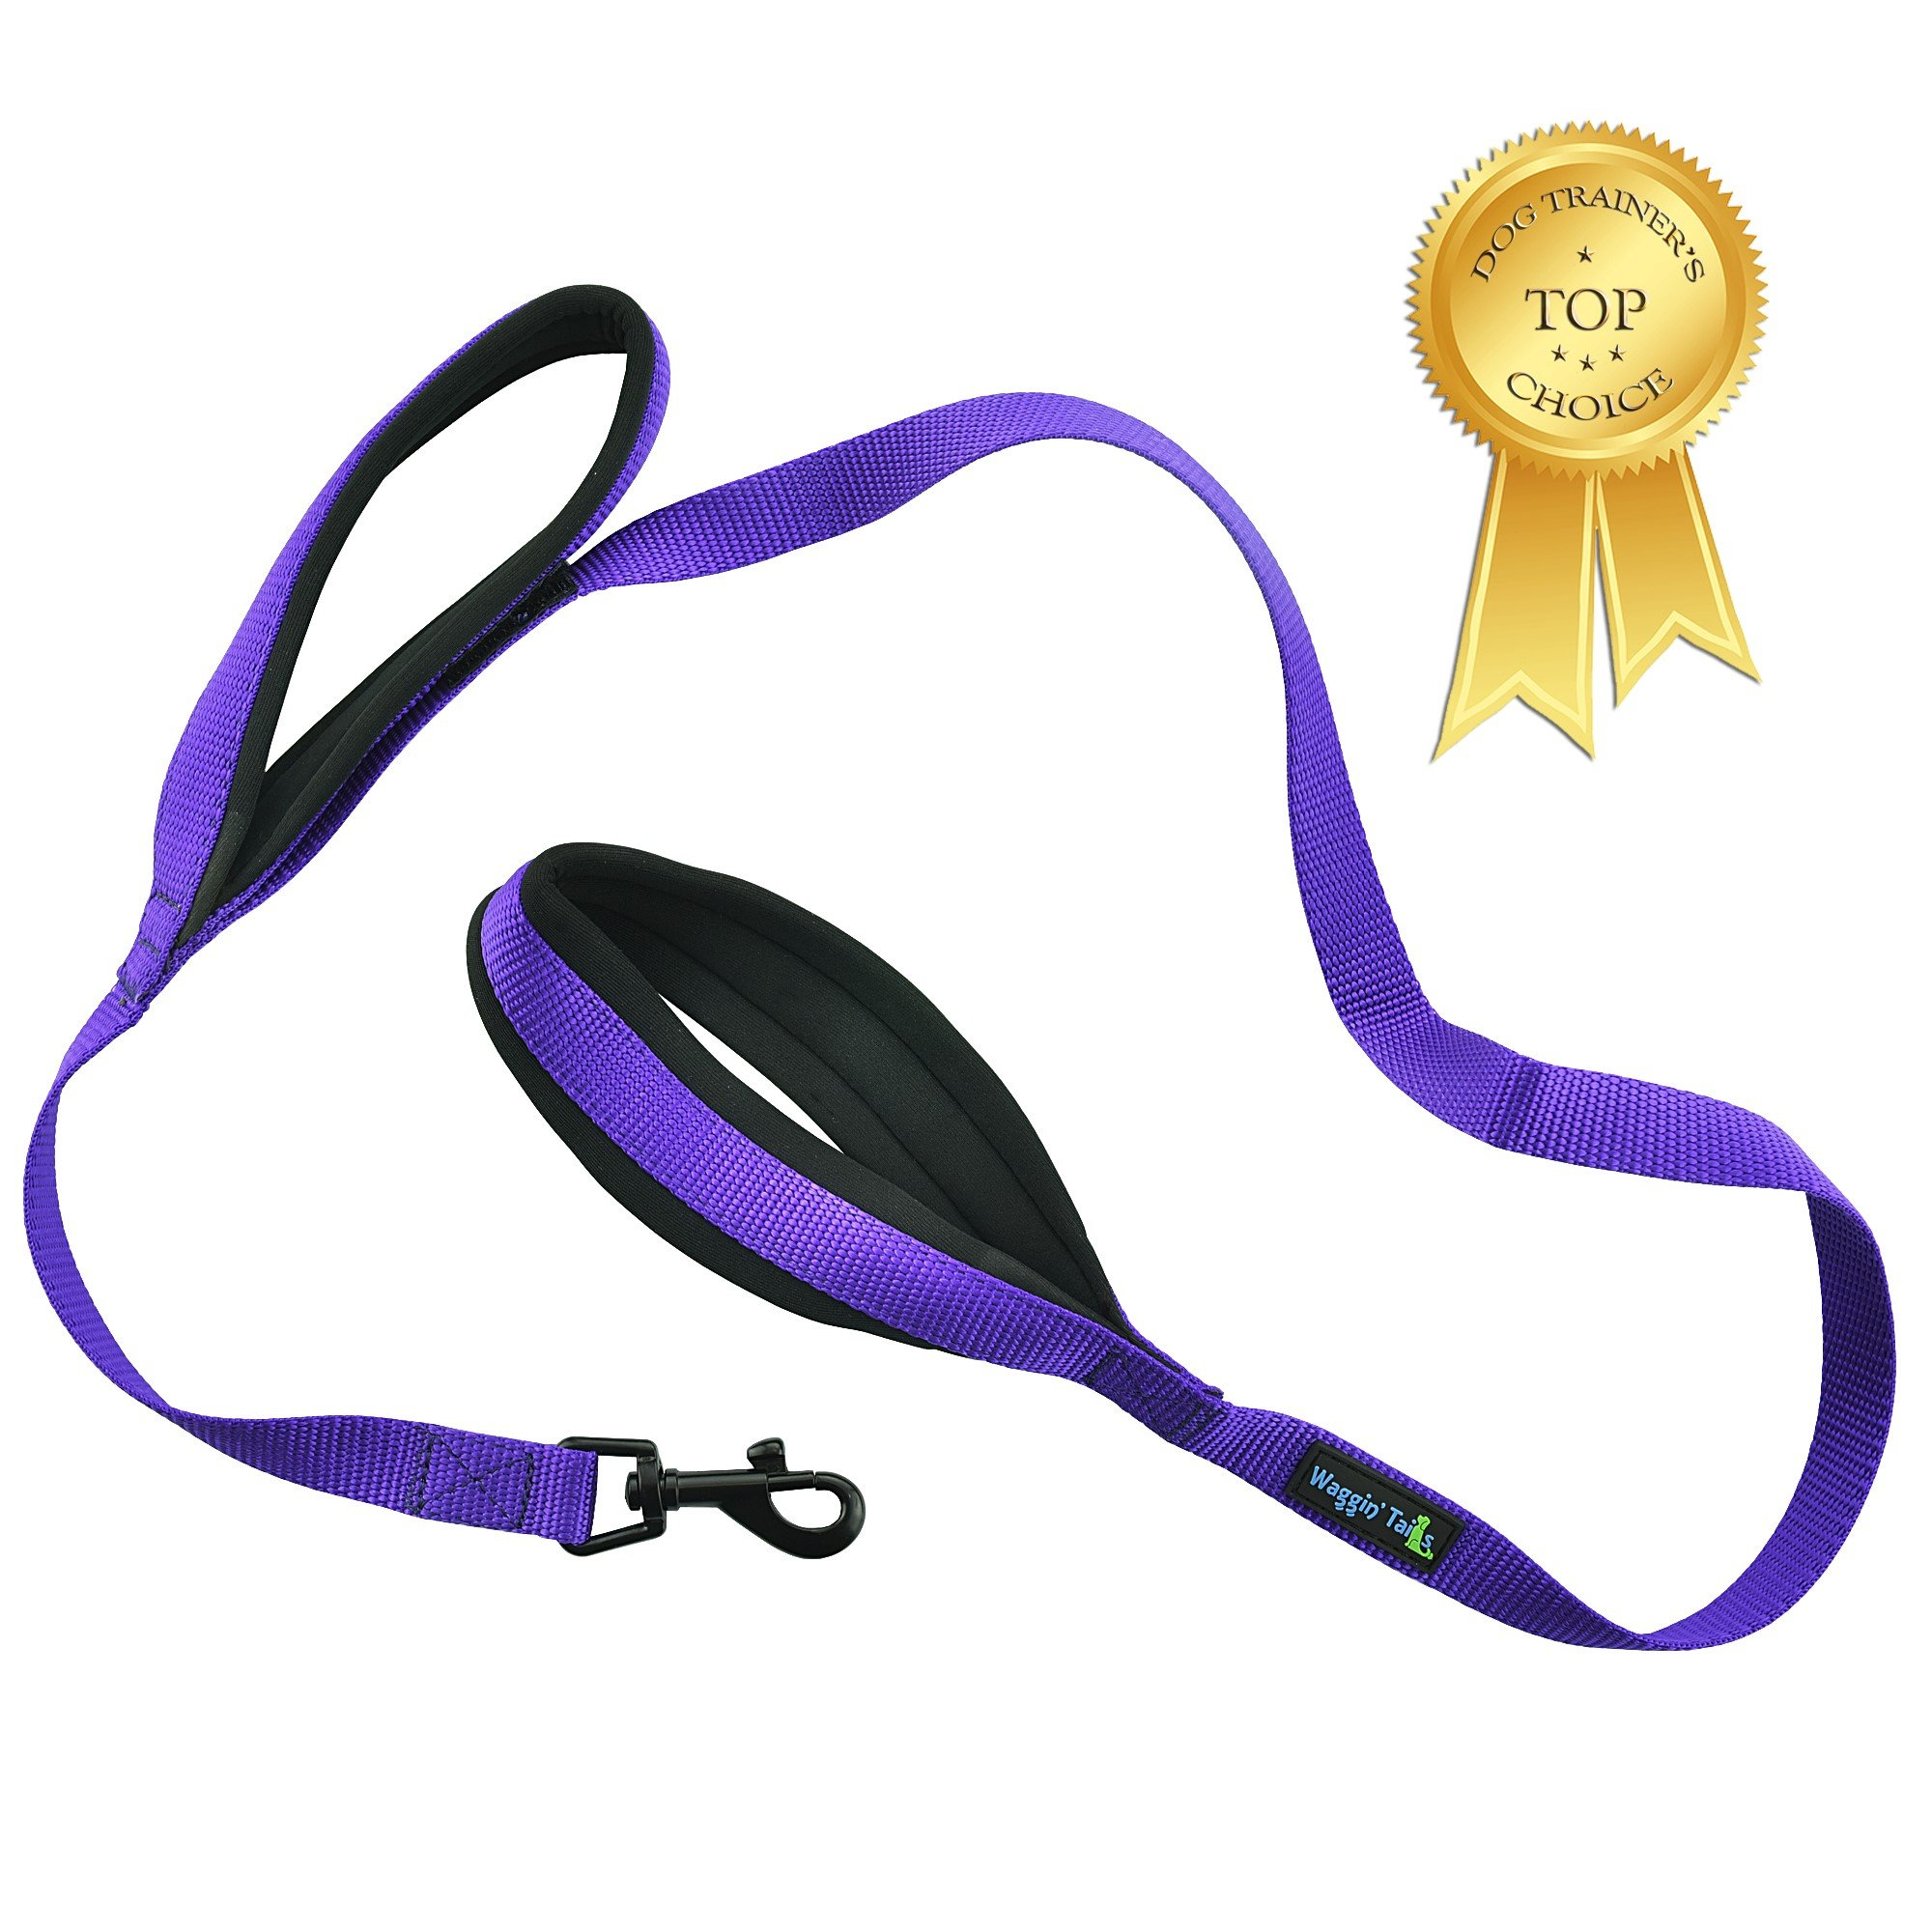 Soft and Thick Double Handle Premium Nylon 4FT x 3/4Inch Leash - Dual Soft Padded Handles for Ultimate Control - For Small to Large Dogs - ''Classic Comfort'' in 4 Vibrant Colors (Vibrant Purple)